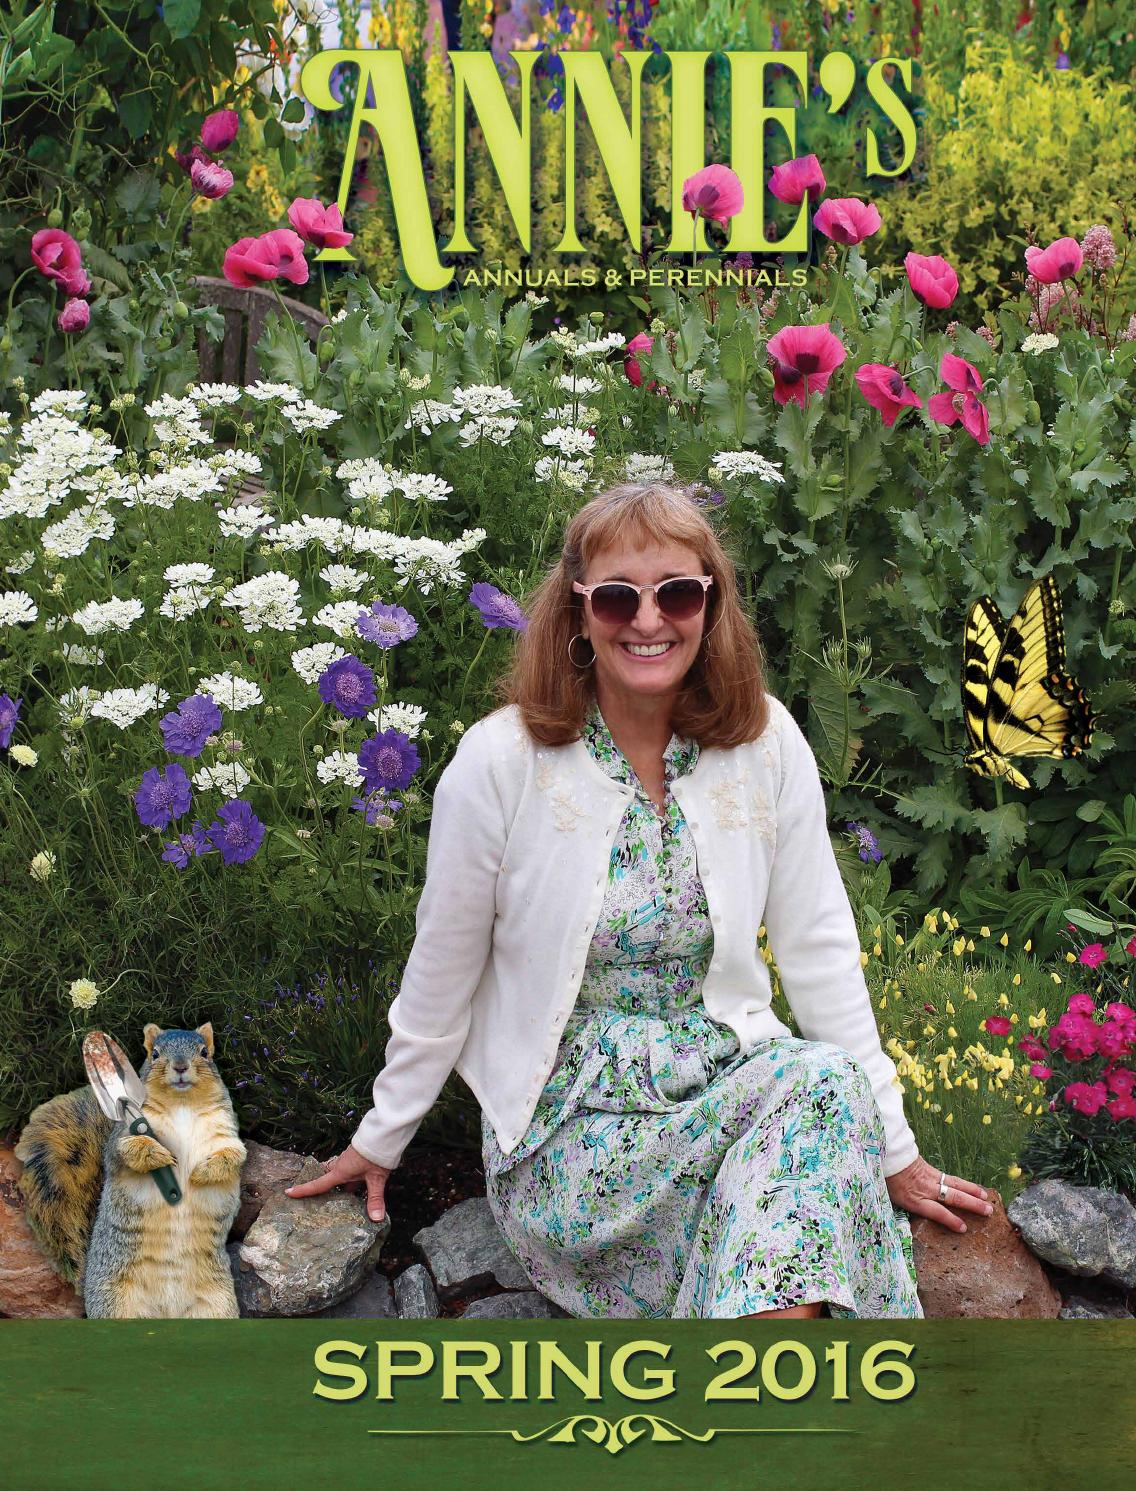 Annies Annuals And Perennials Spring Catalog 2016 By Annies